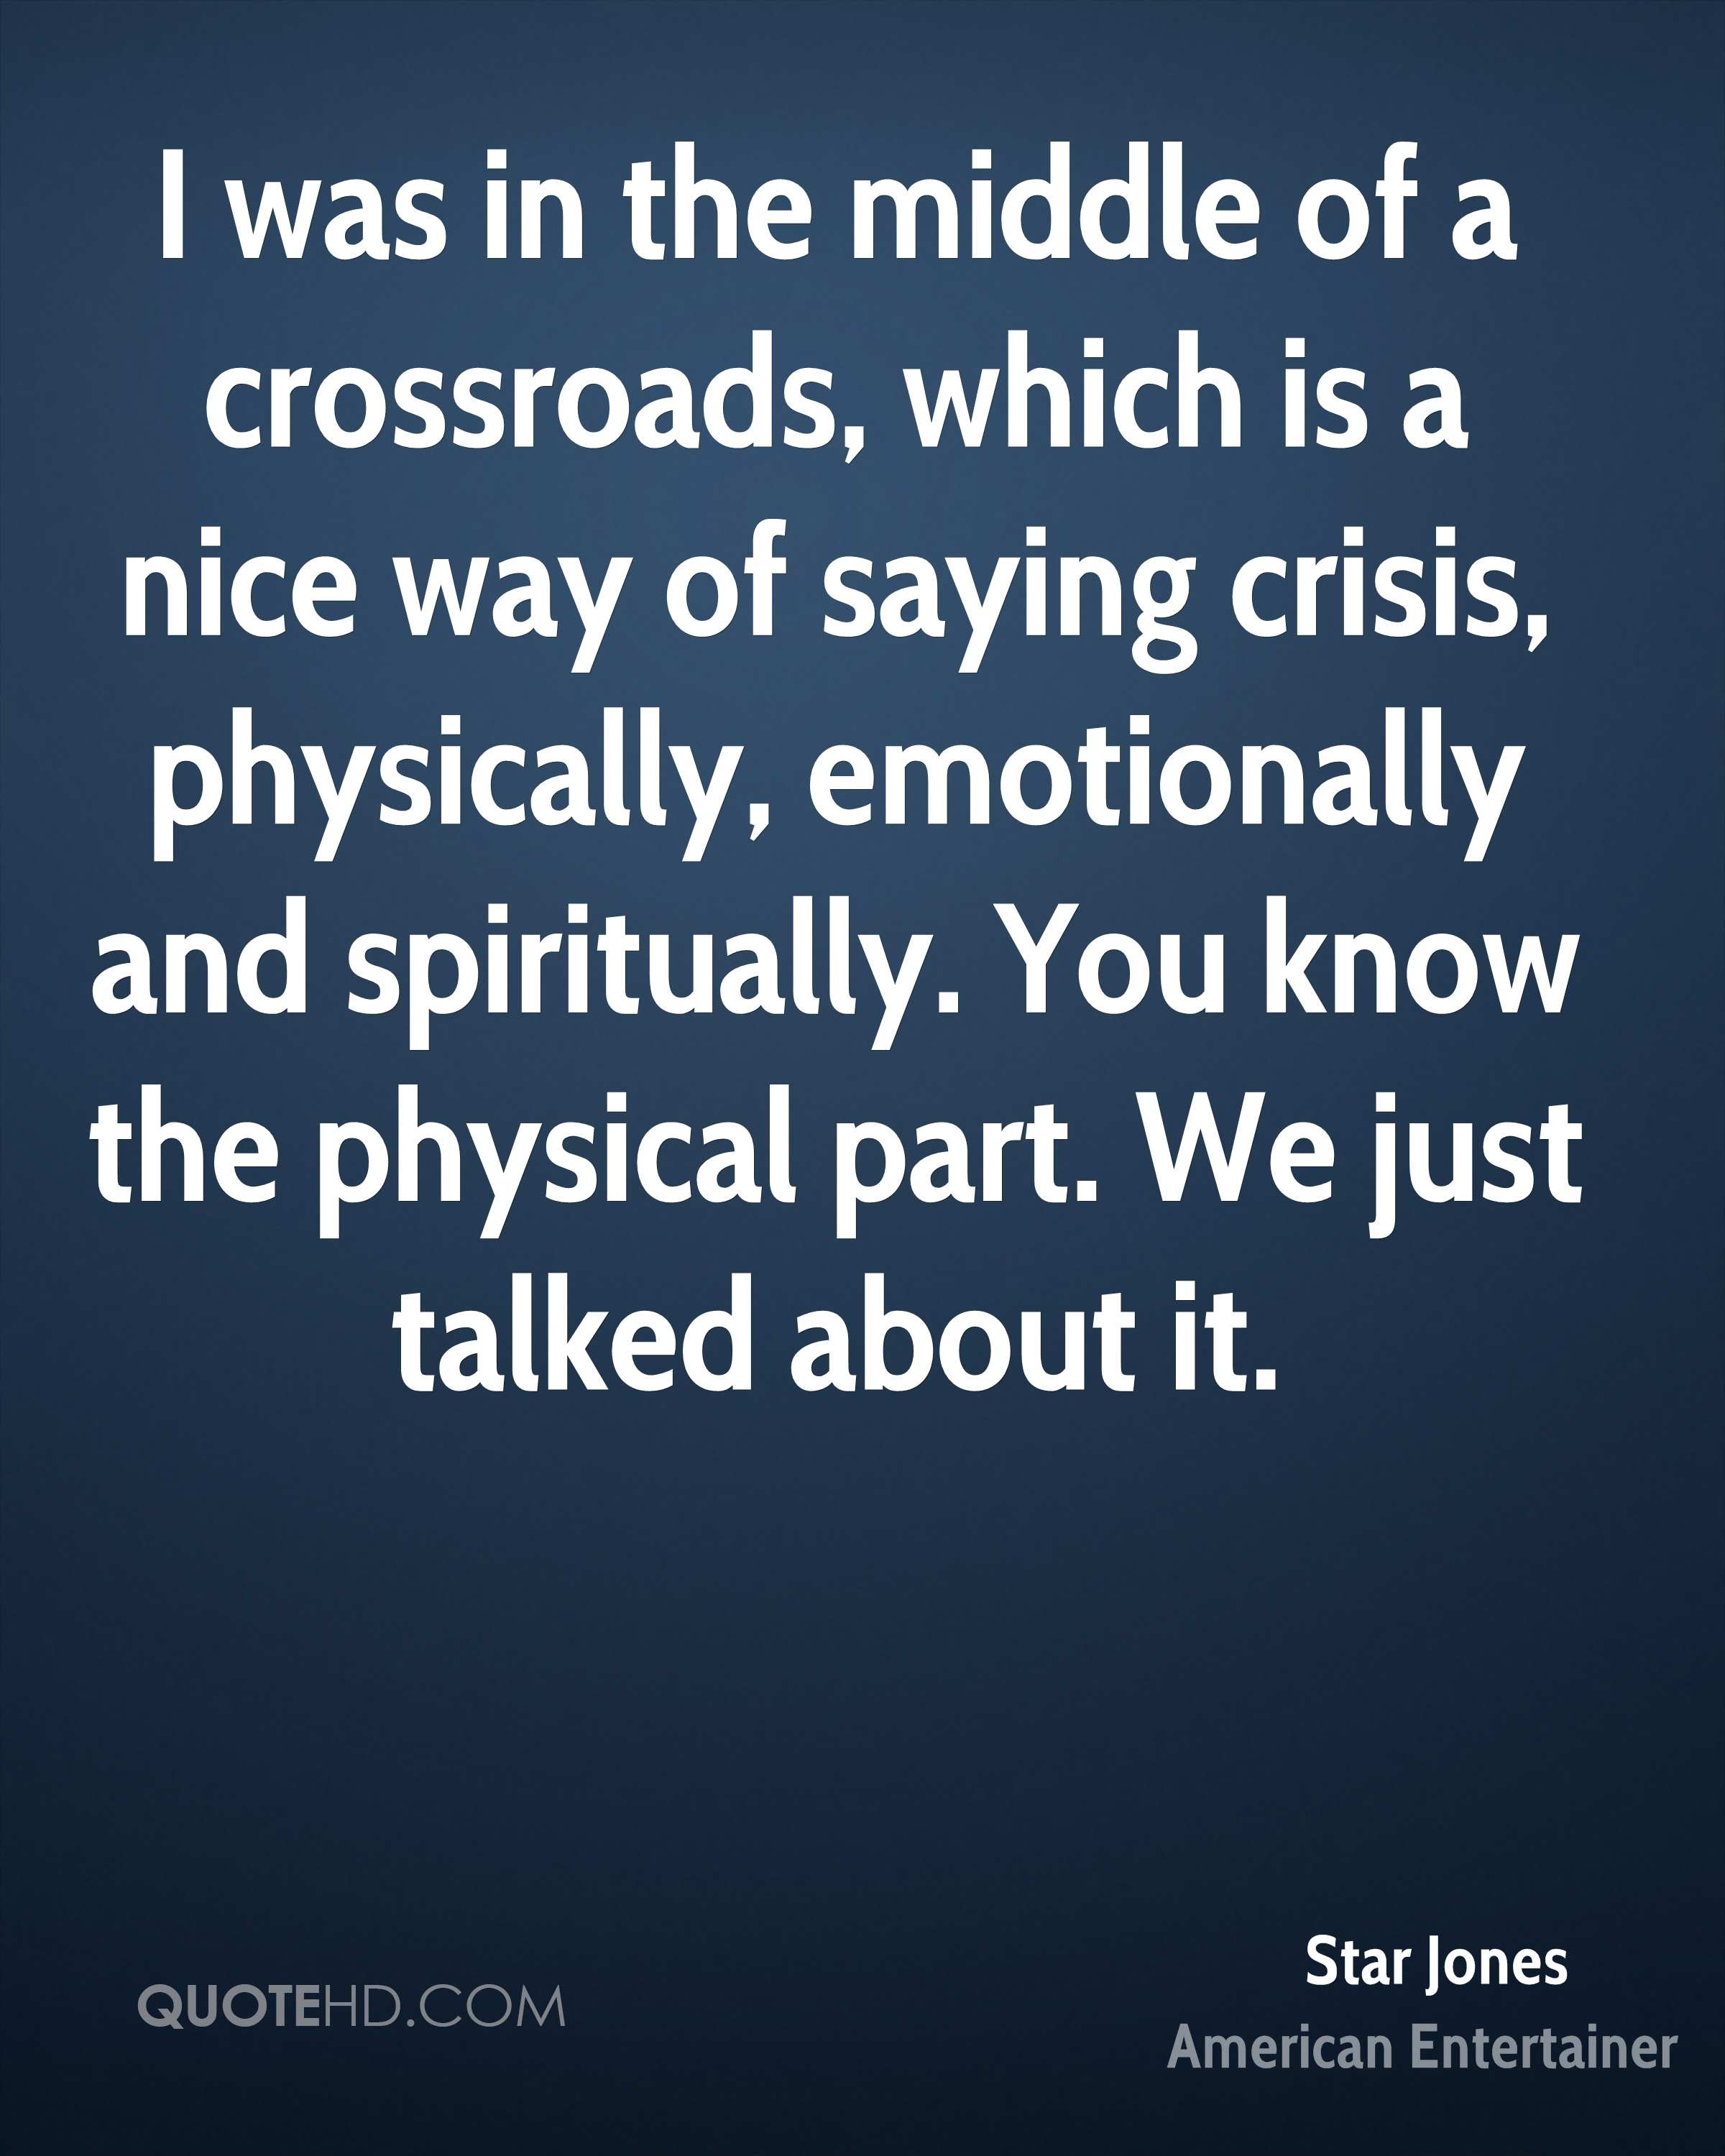 I was in the middle of a crossroads, which is a nice way of saying crisis, physically, emotionally and spiritually. You know the physical part. We just talked about it.